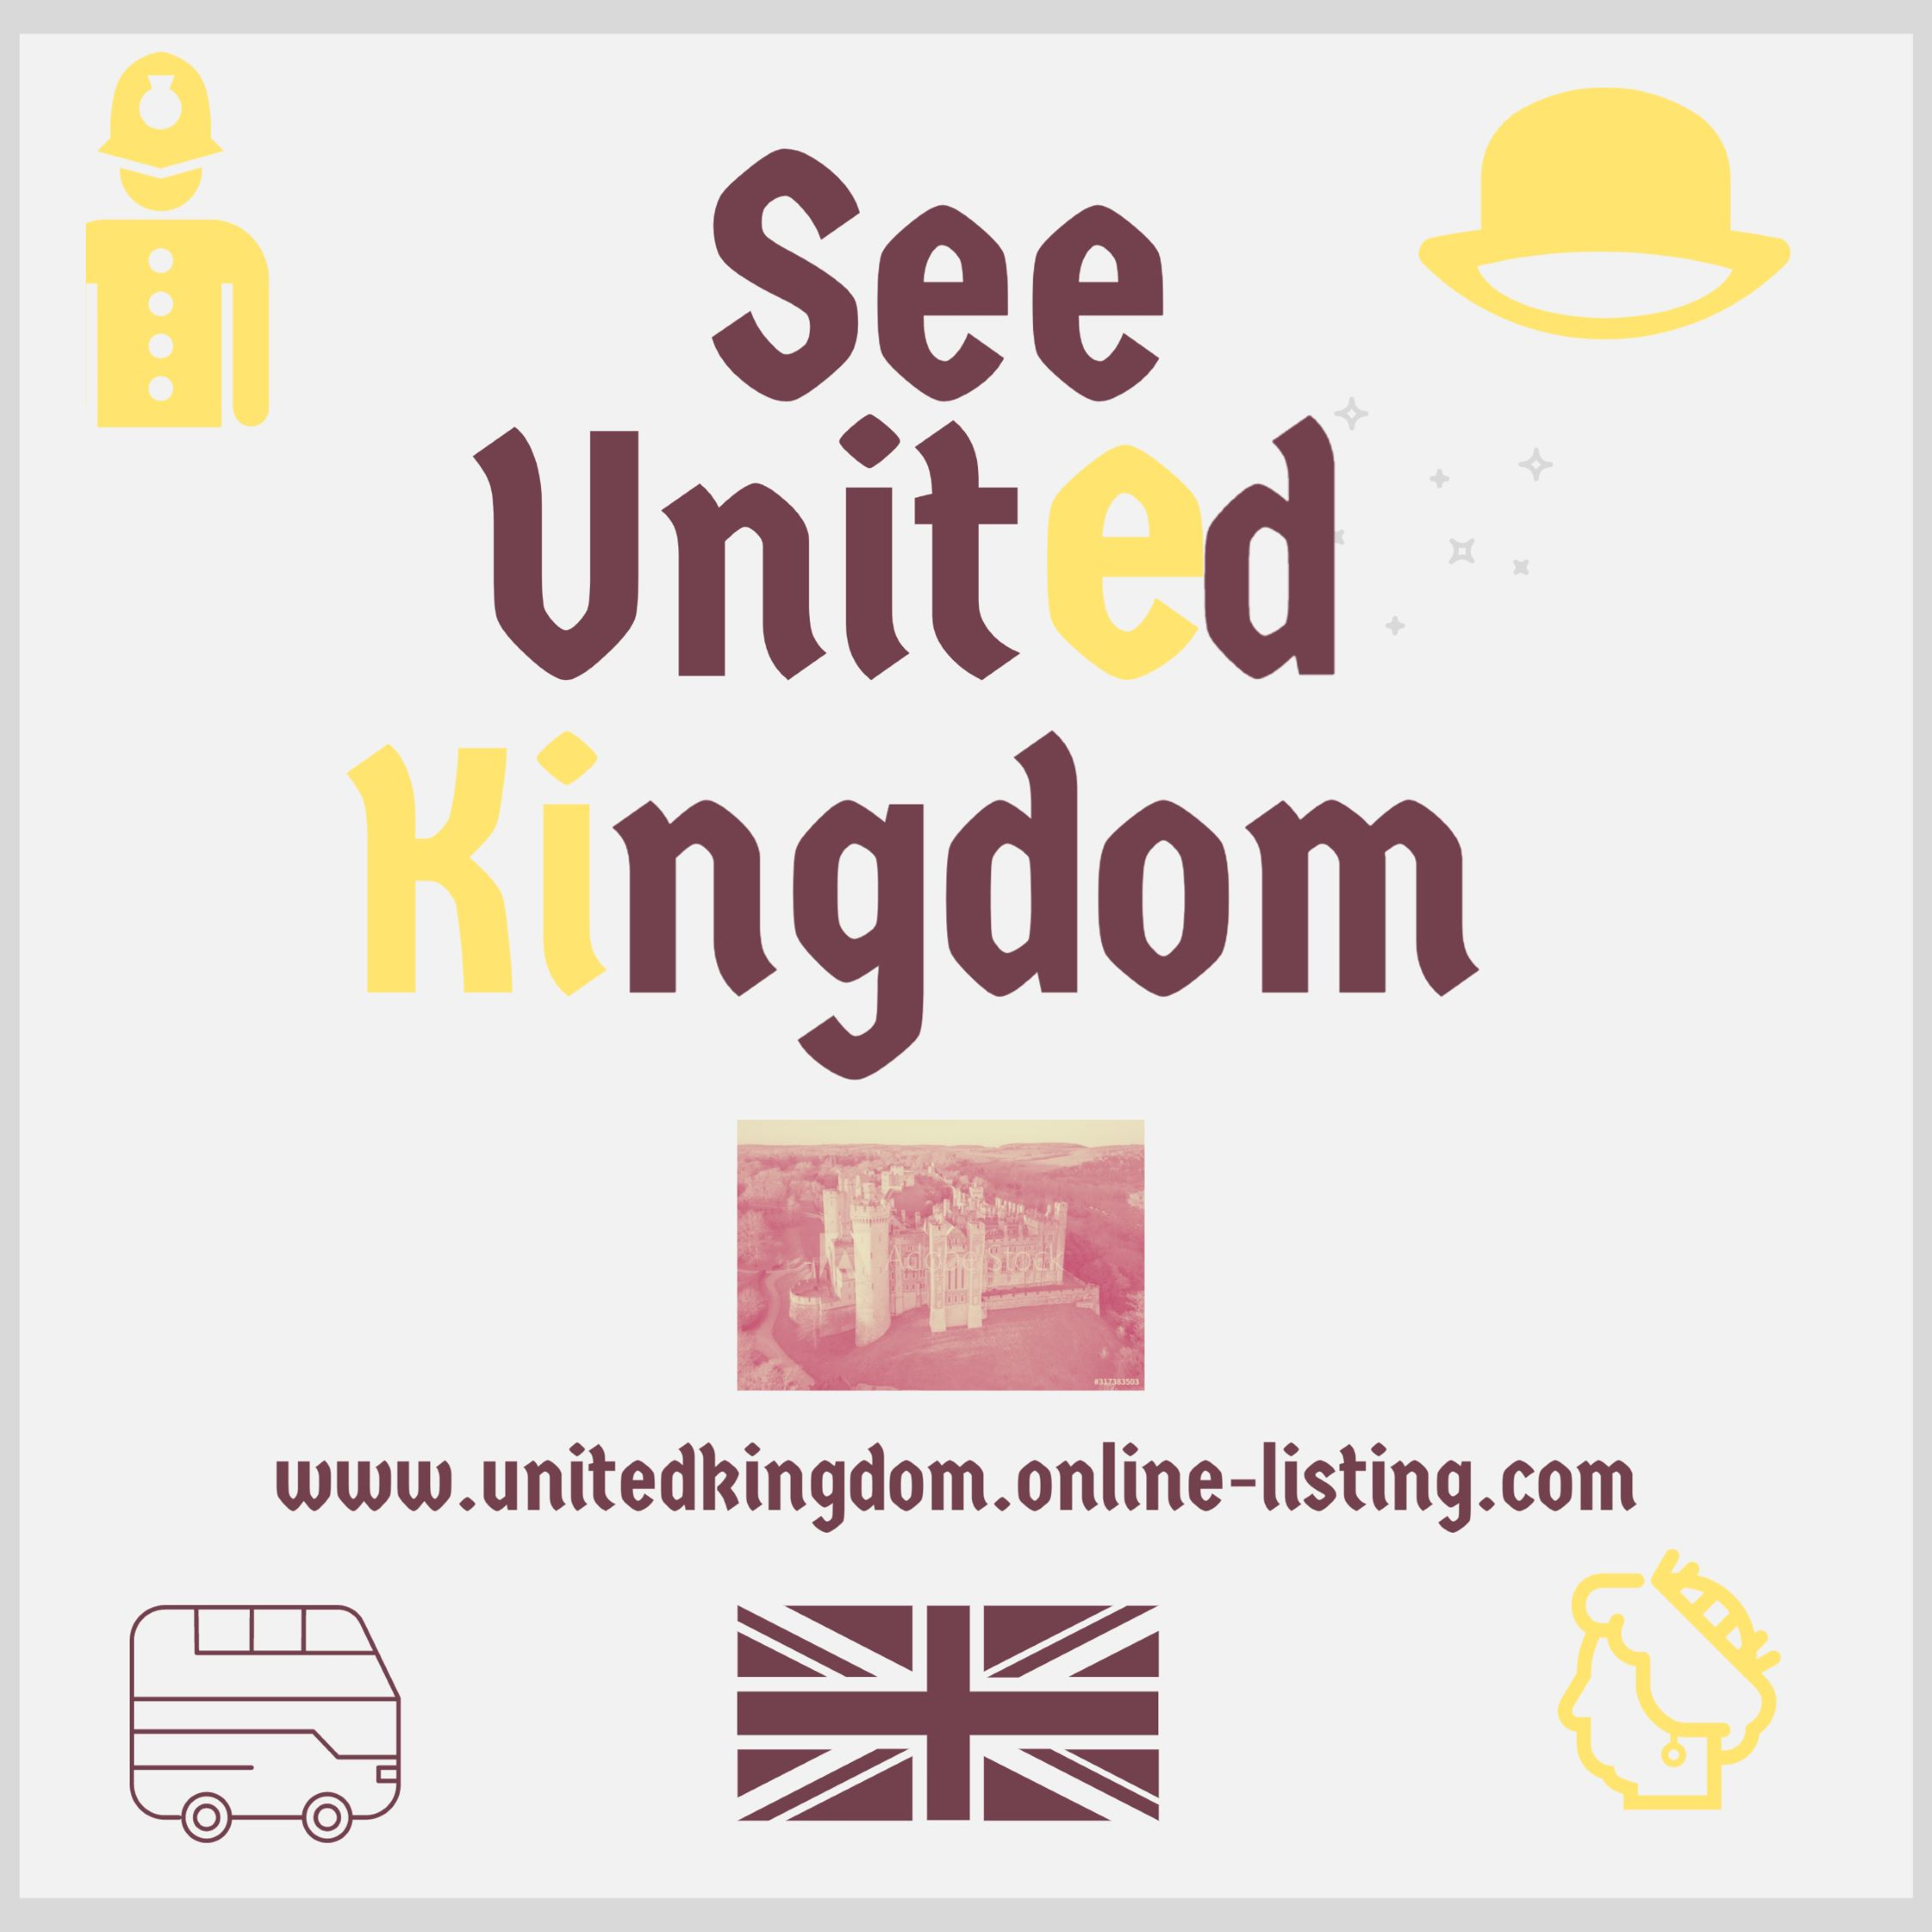 See United Kingdom